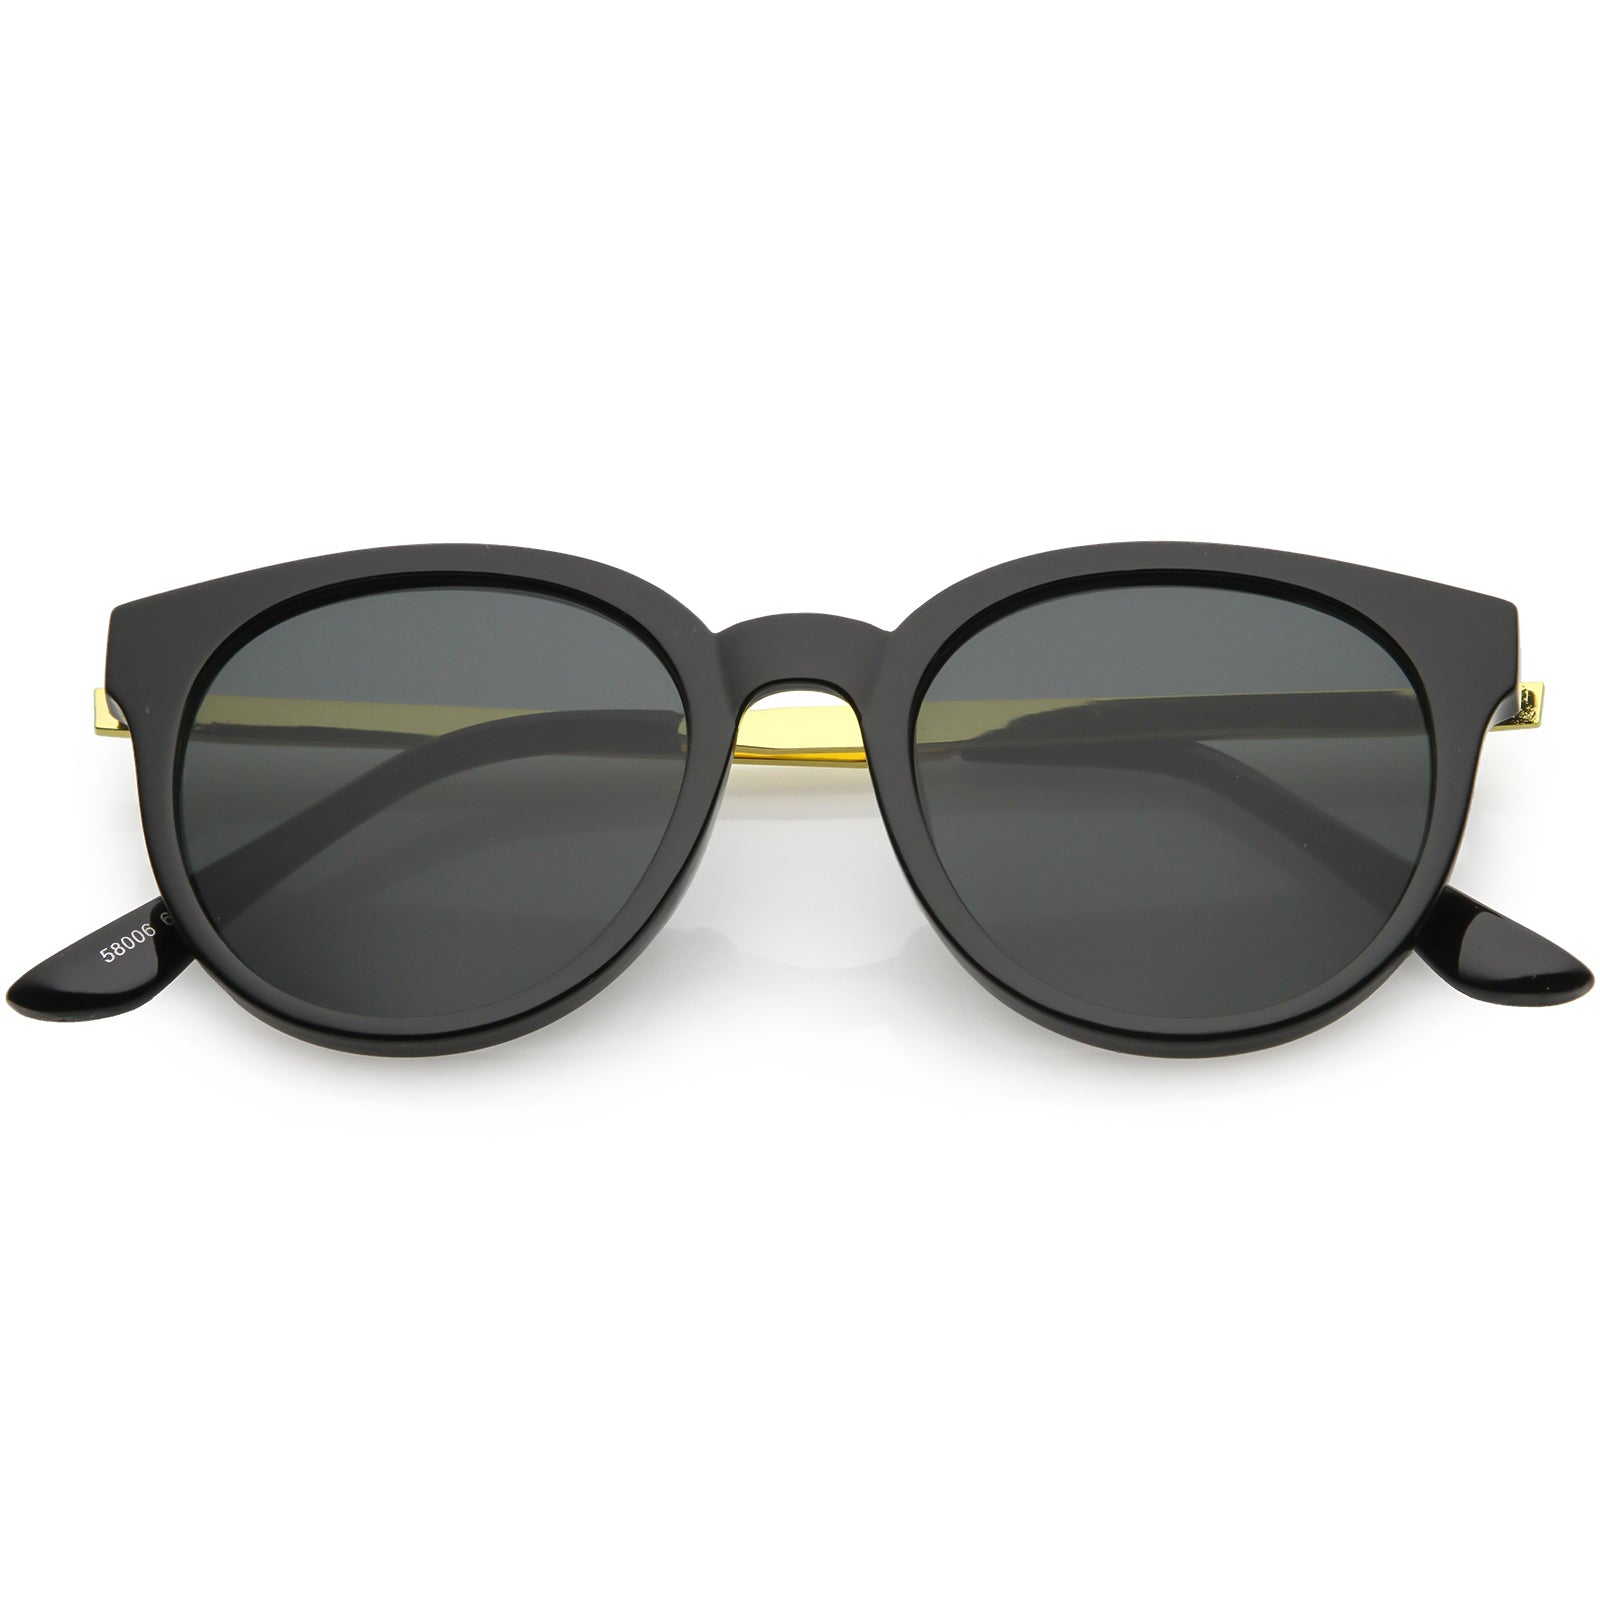 Indie Retro Modern Thick Horned Rim Flat Lens Sunglasses C844